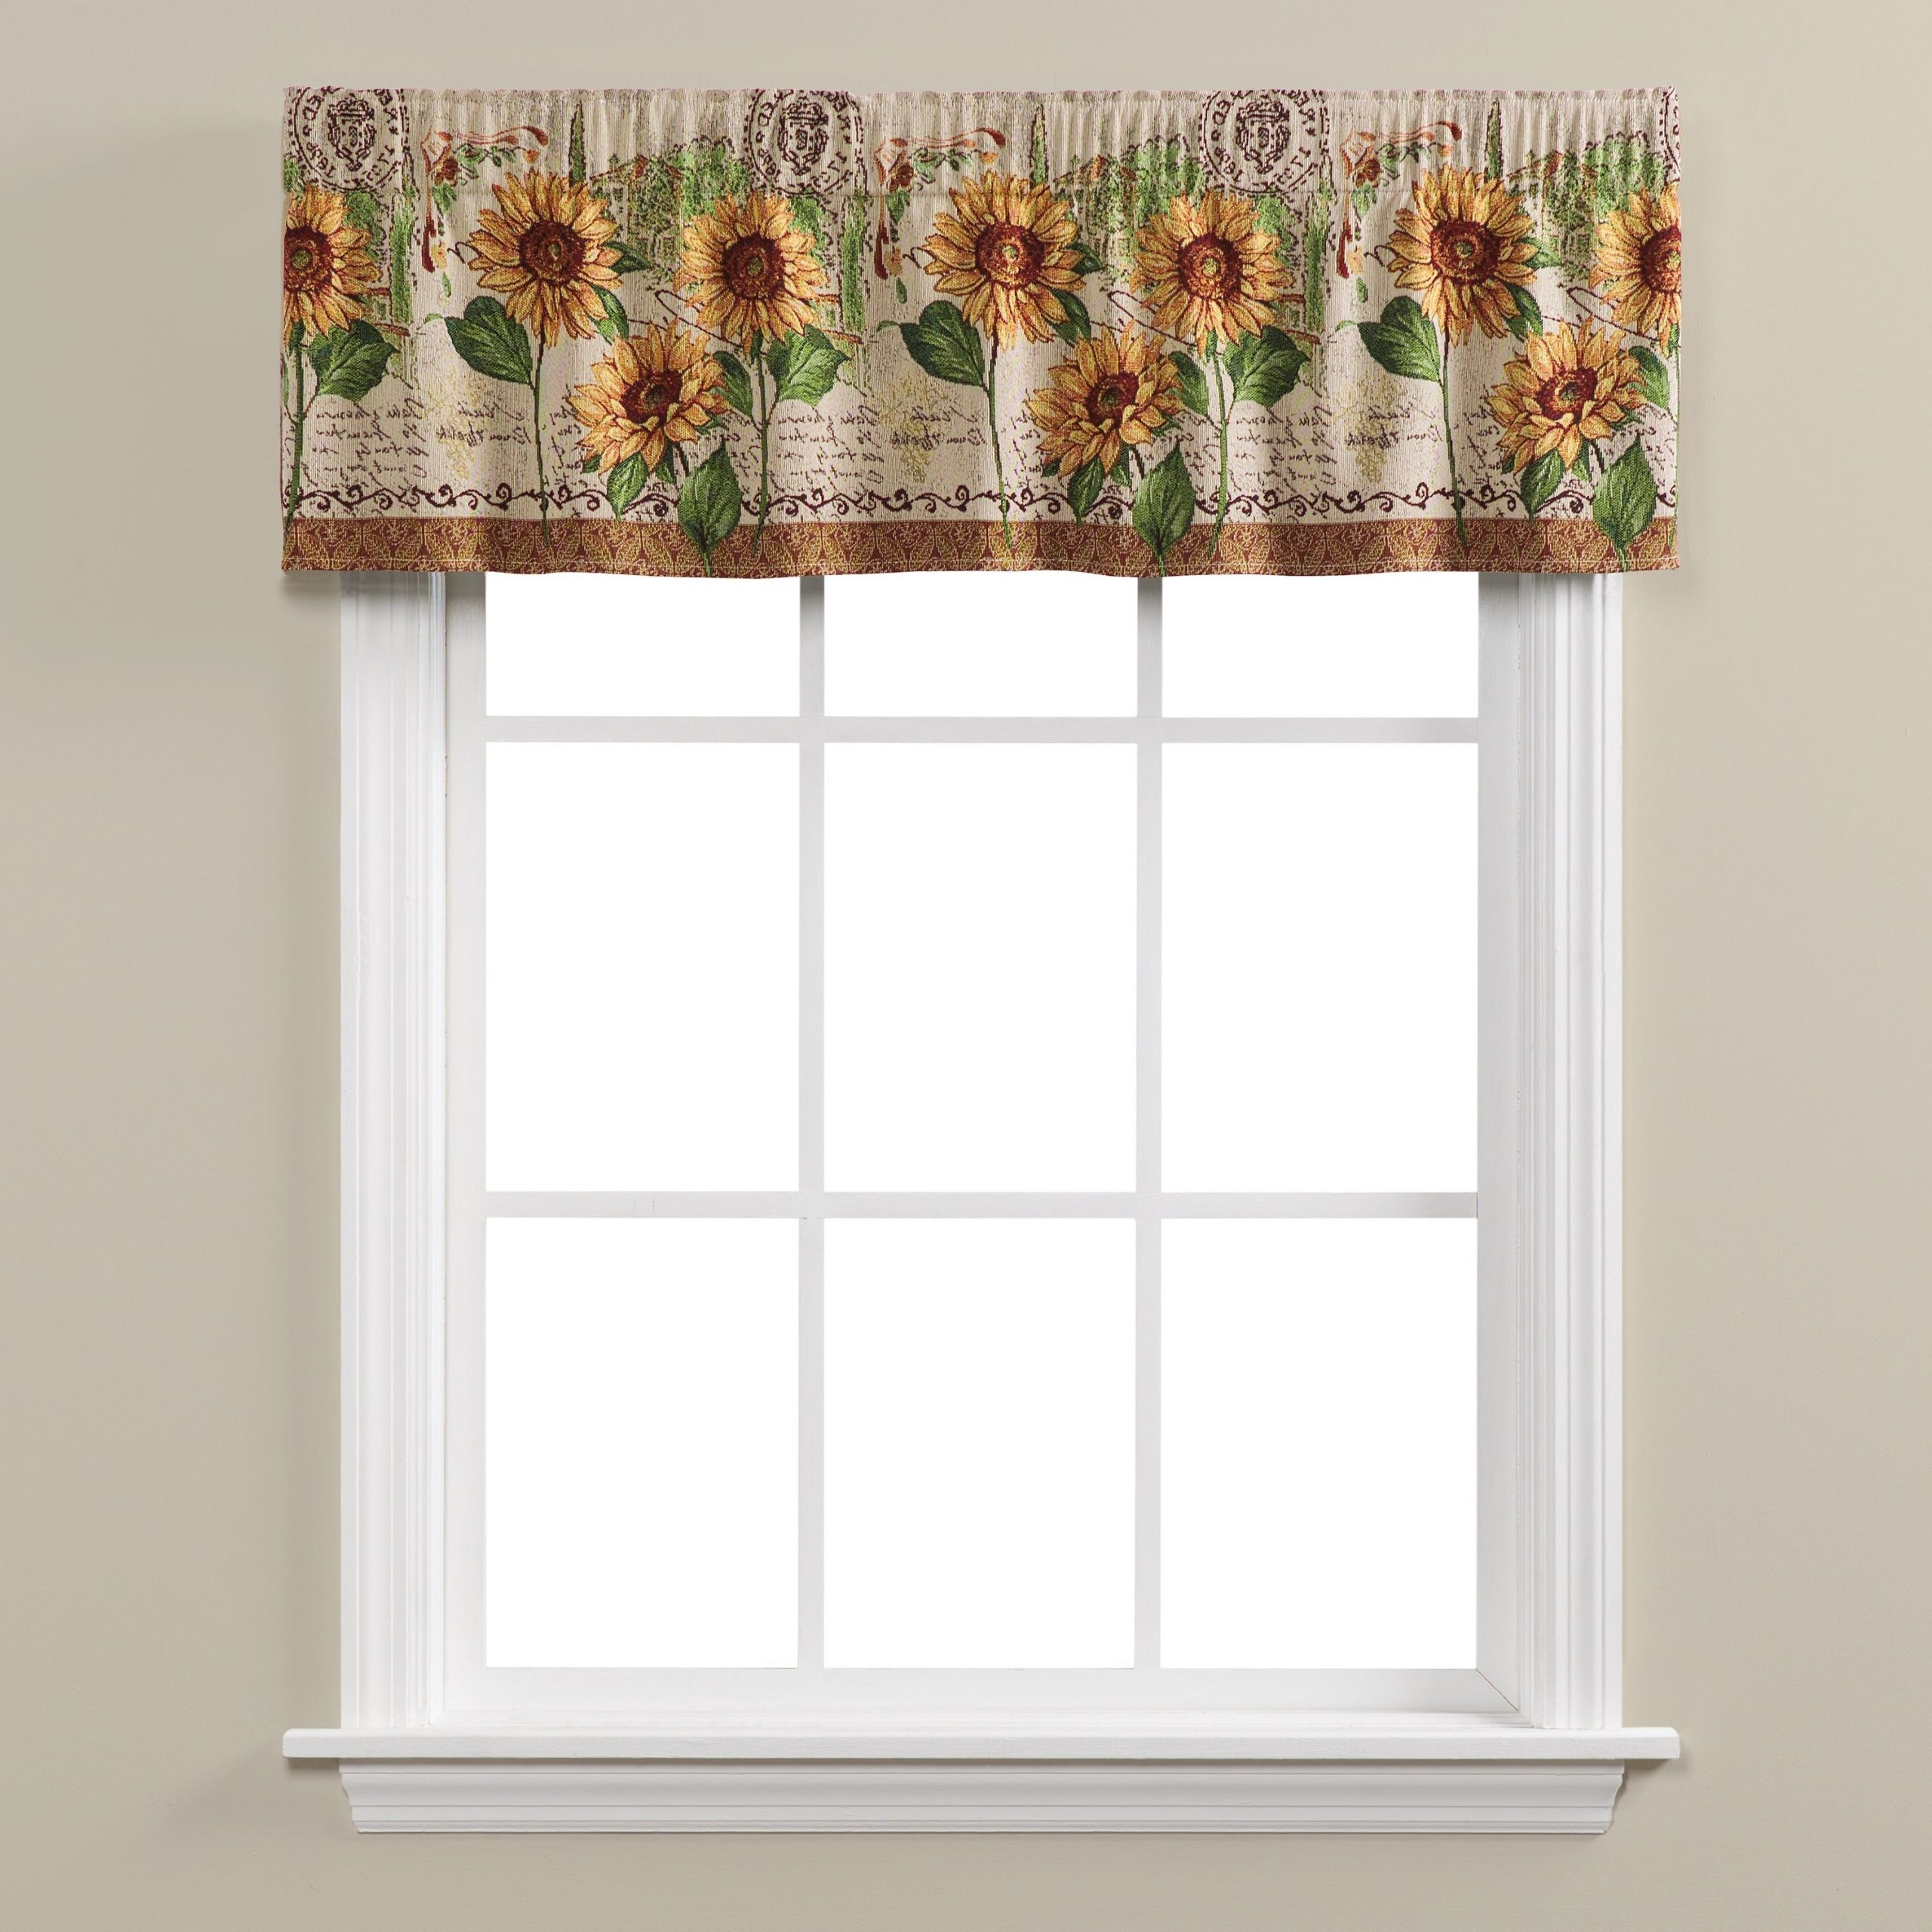 Popular Skl Home Tuscan Sunflowers Tapestry Valance Throughout Traditional Tailored Window Curtains With Embroidered Yellow Sunflowers (View 15 of 20)